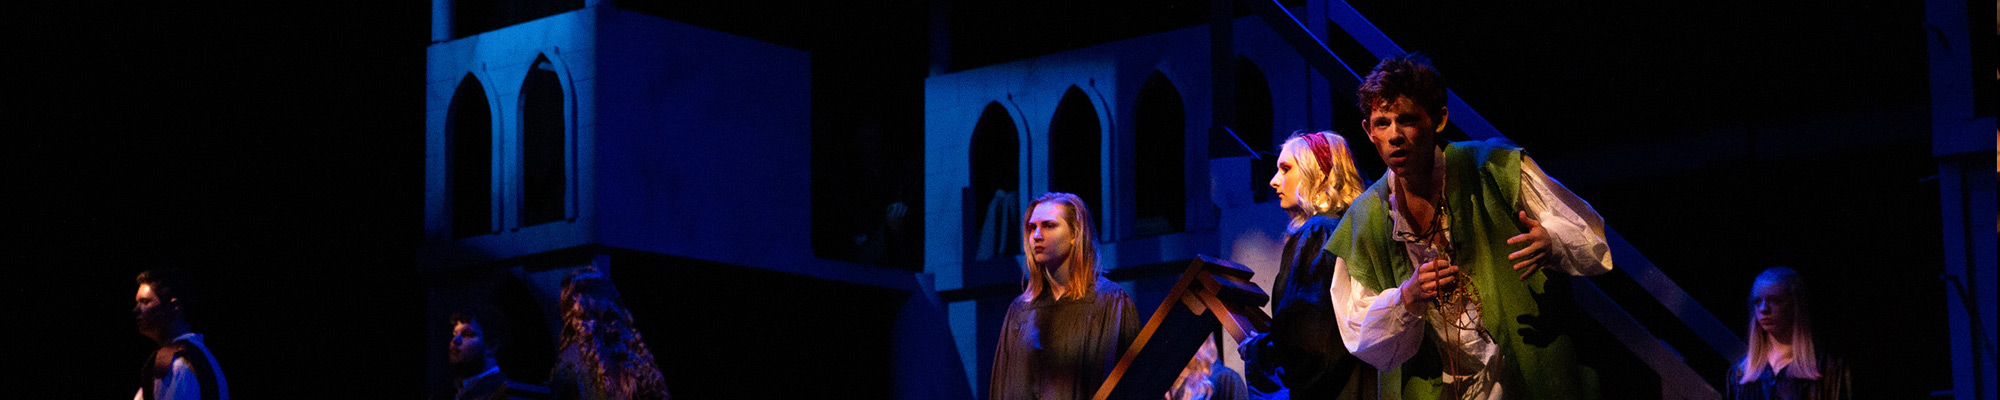 Performance of the Hunchback of Notre Dame